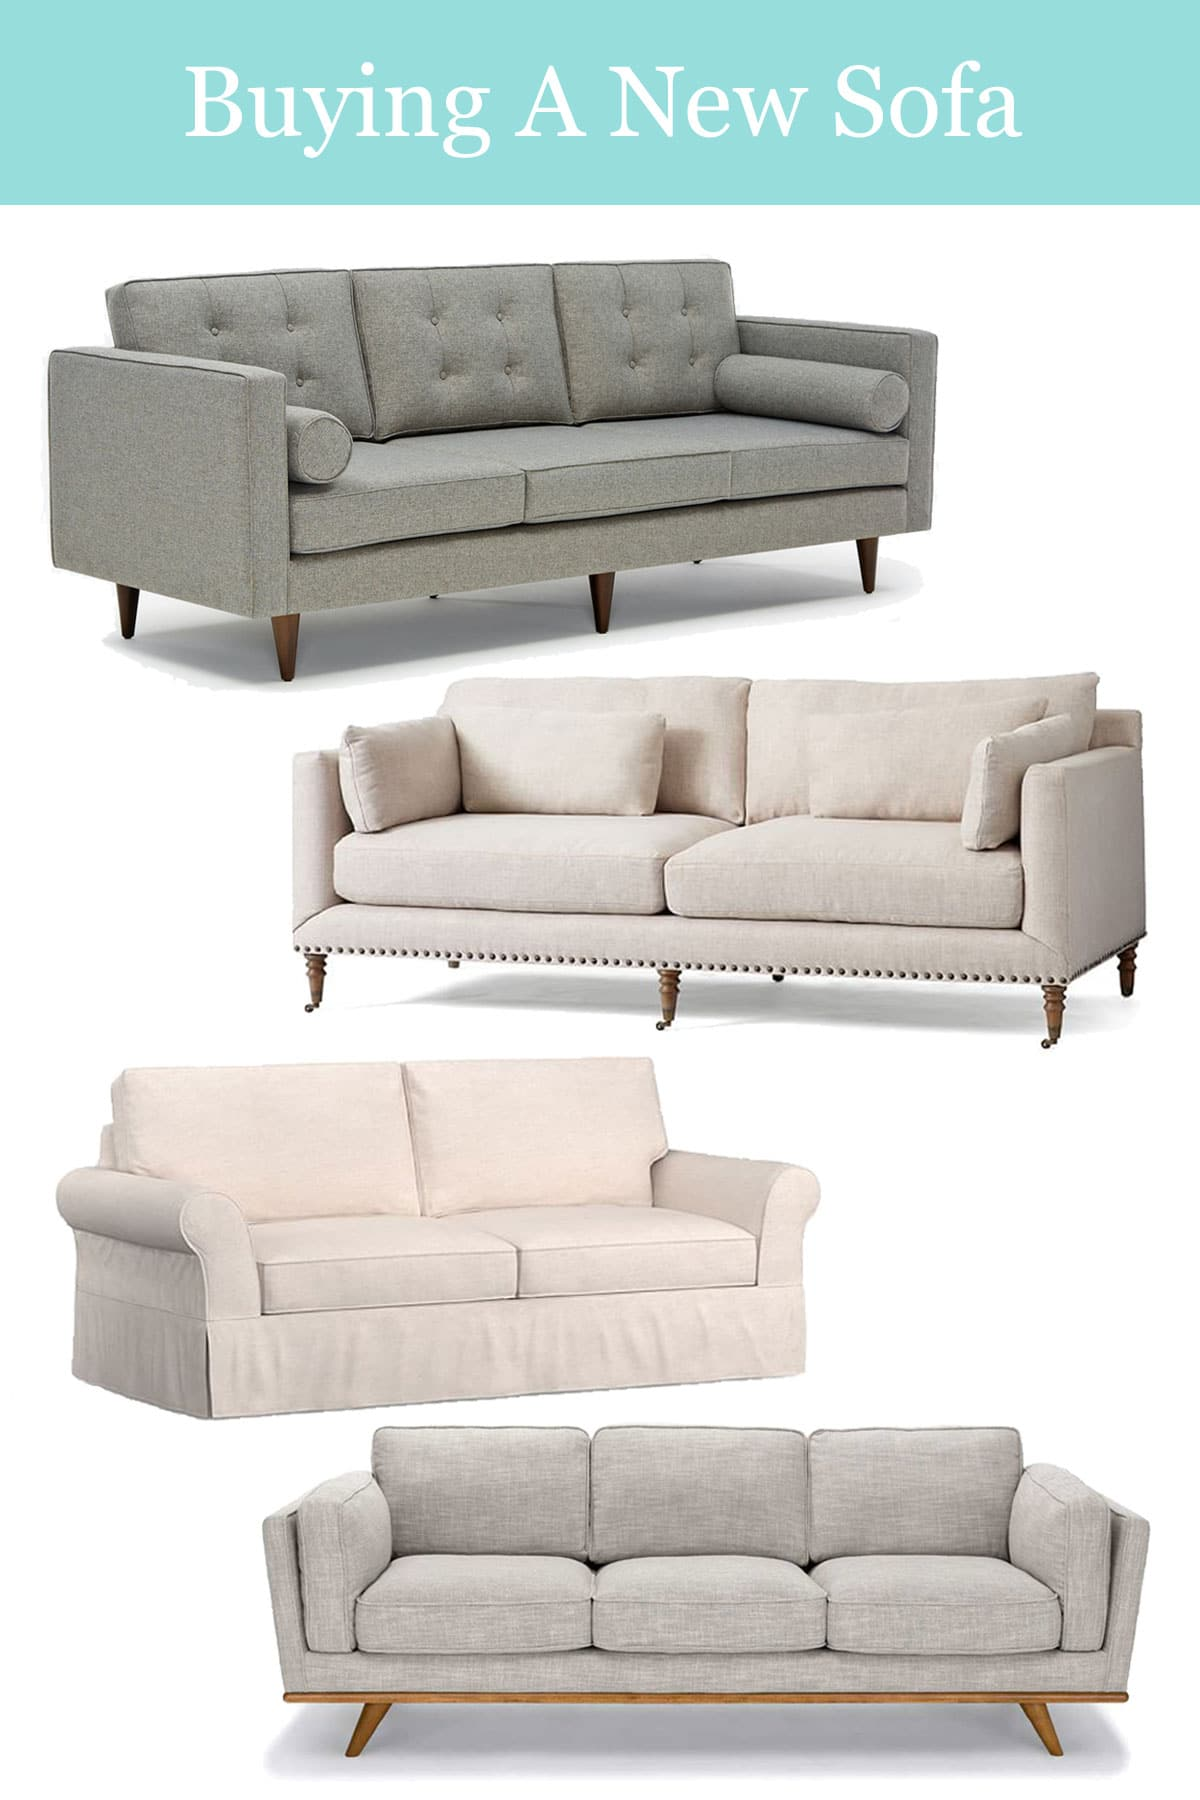 How to buy a sofa both in person and online.